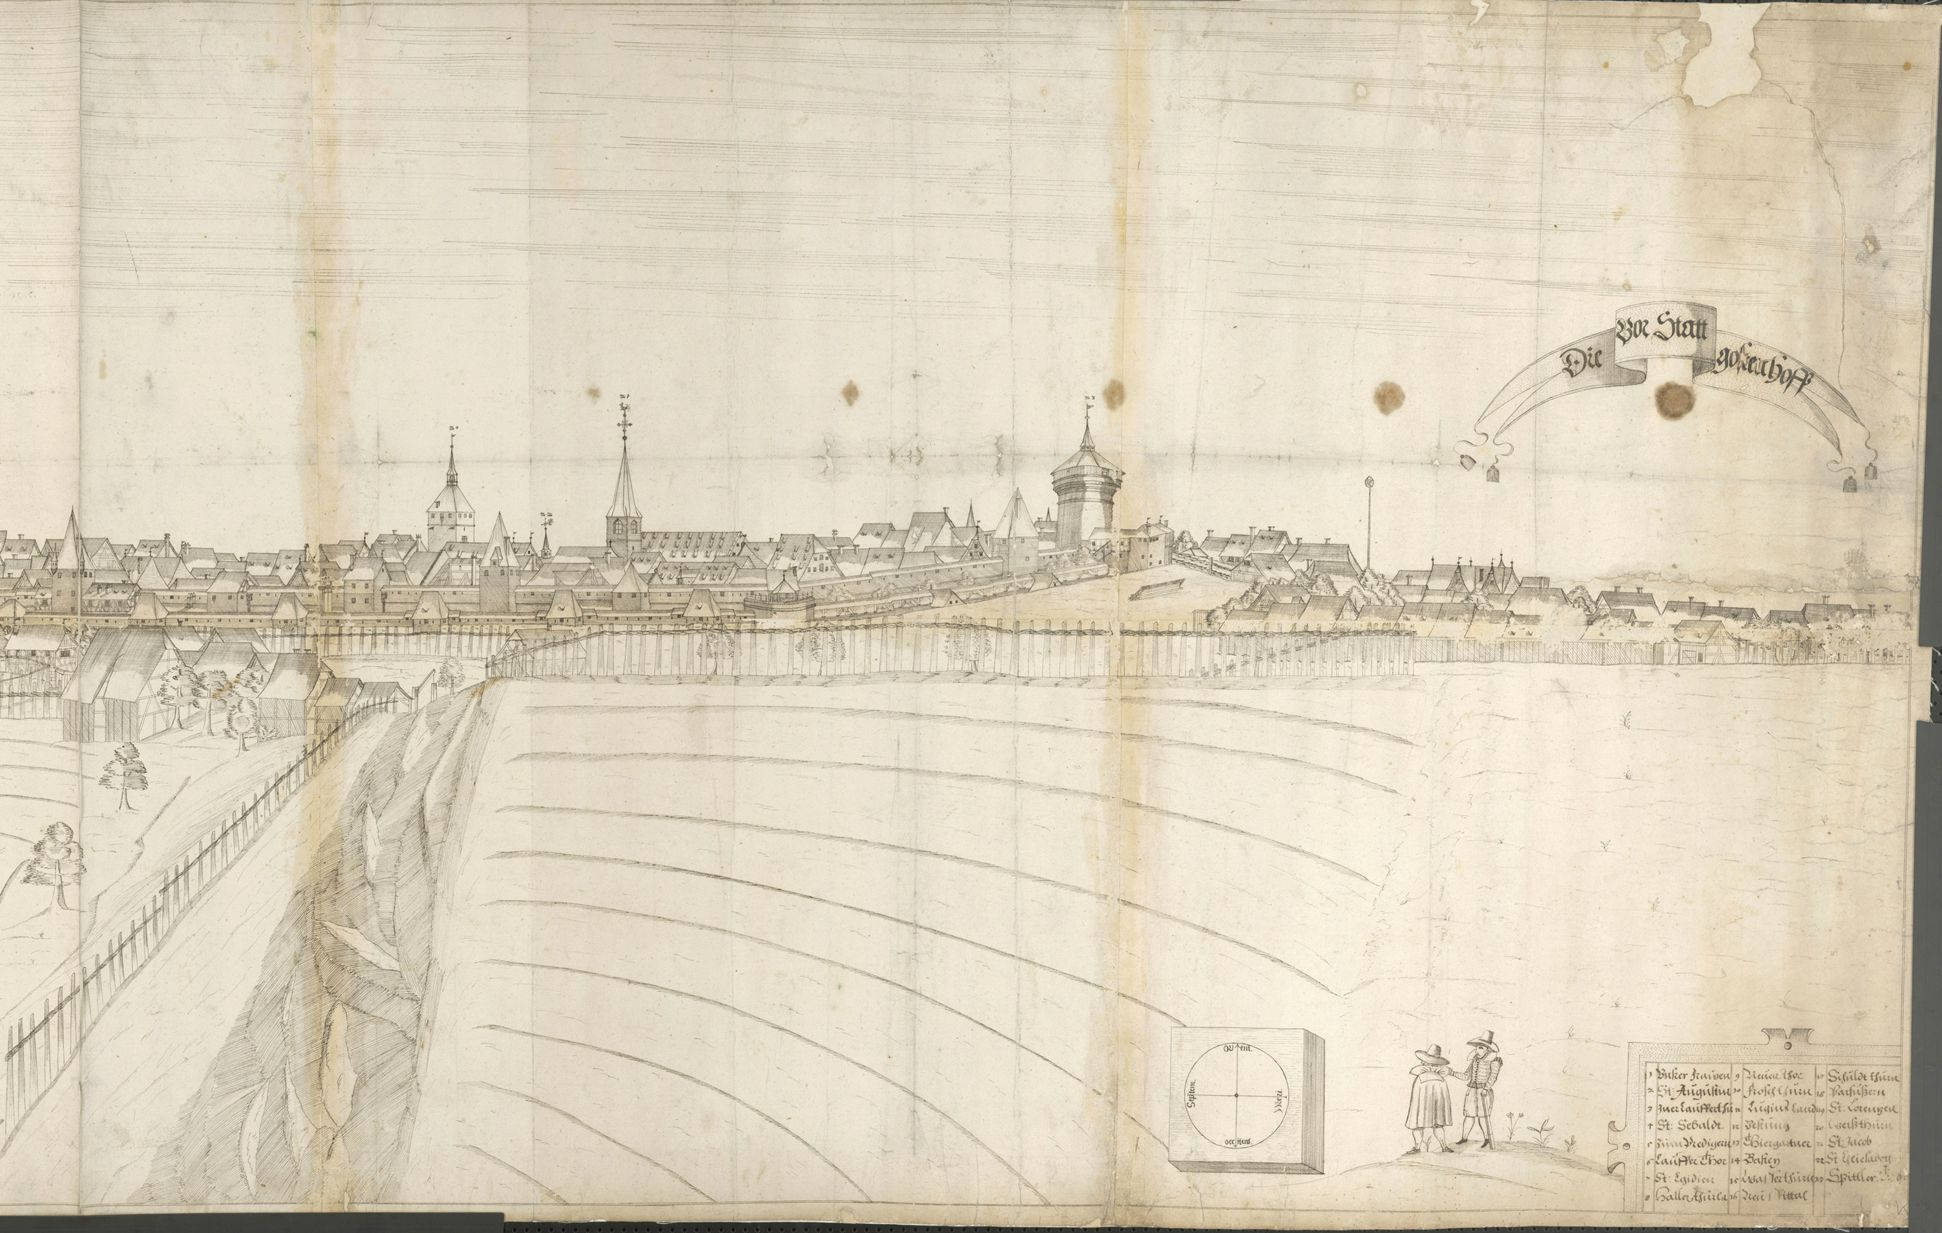 Panoramic view of the City of Nuremberg as seen from the west Central third (from the Great Hall to the tower Red Z)